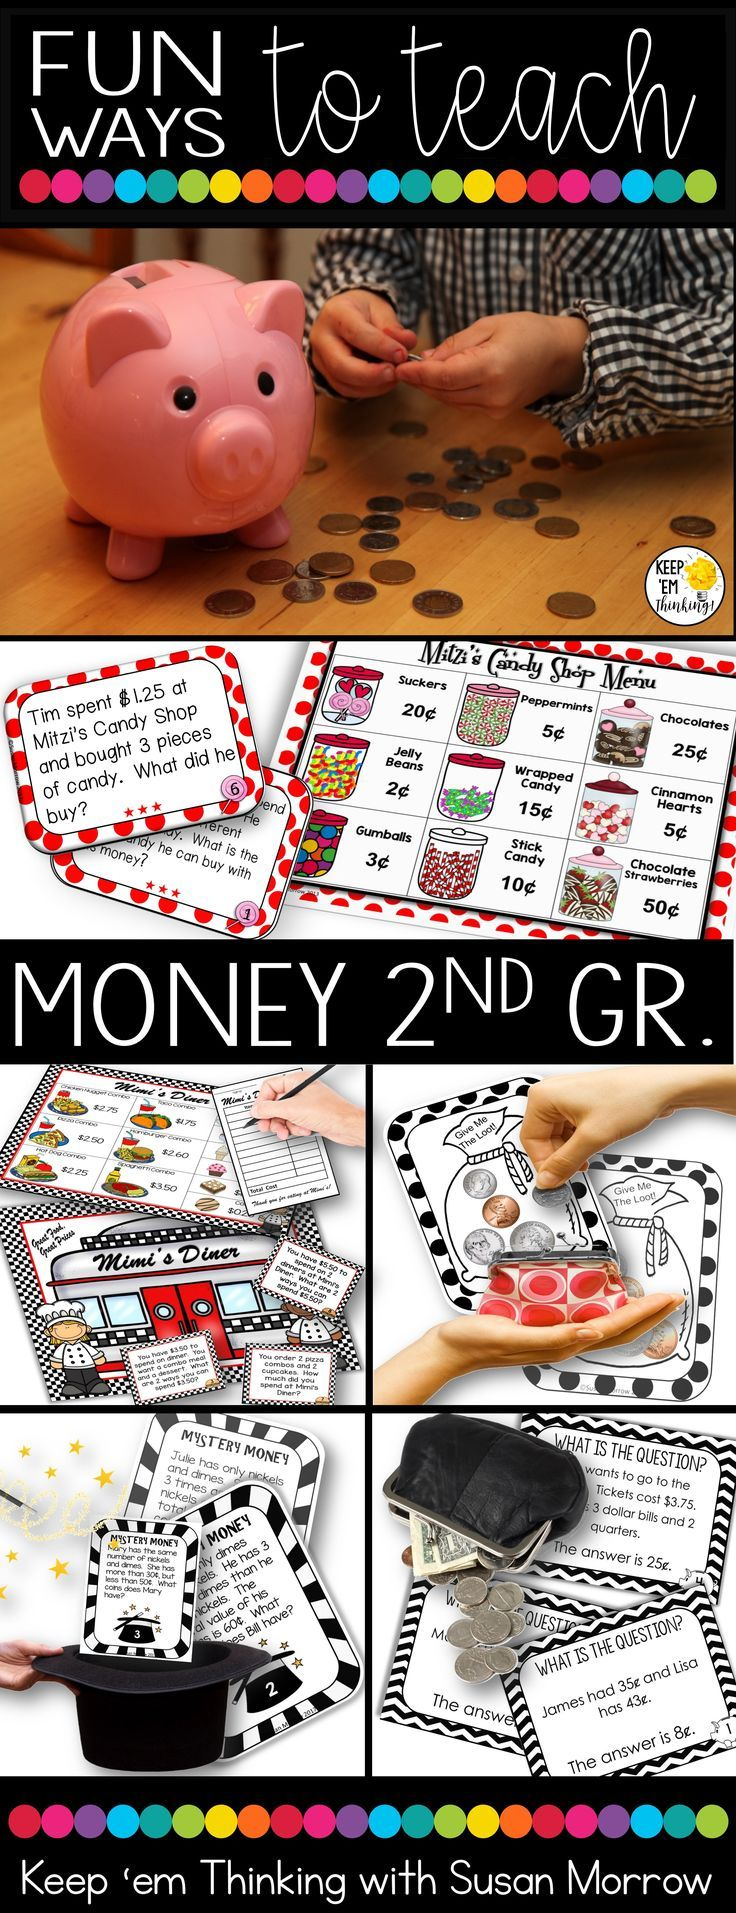 This unit has EVERYTHING you need to teach money to 2nd grade!  You'll find games, centers, and activities that are differentiated for every level of student in your class.  Many of these money lessons focus on open ended activities, critical thinking and logic, and using money in real world applications.  Perfect for 2nd and 3rd grade!